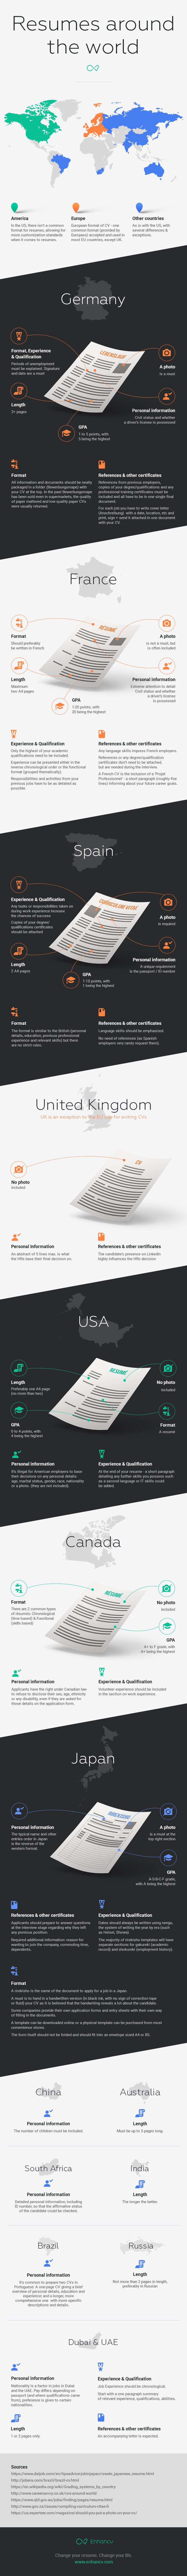 Resumes_around_the_world_infographic